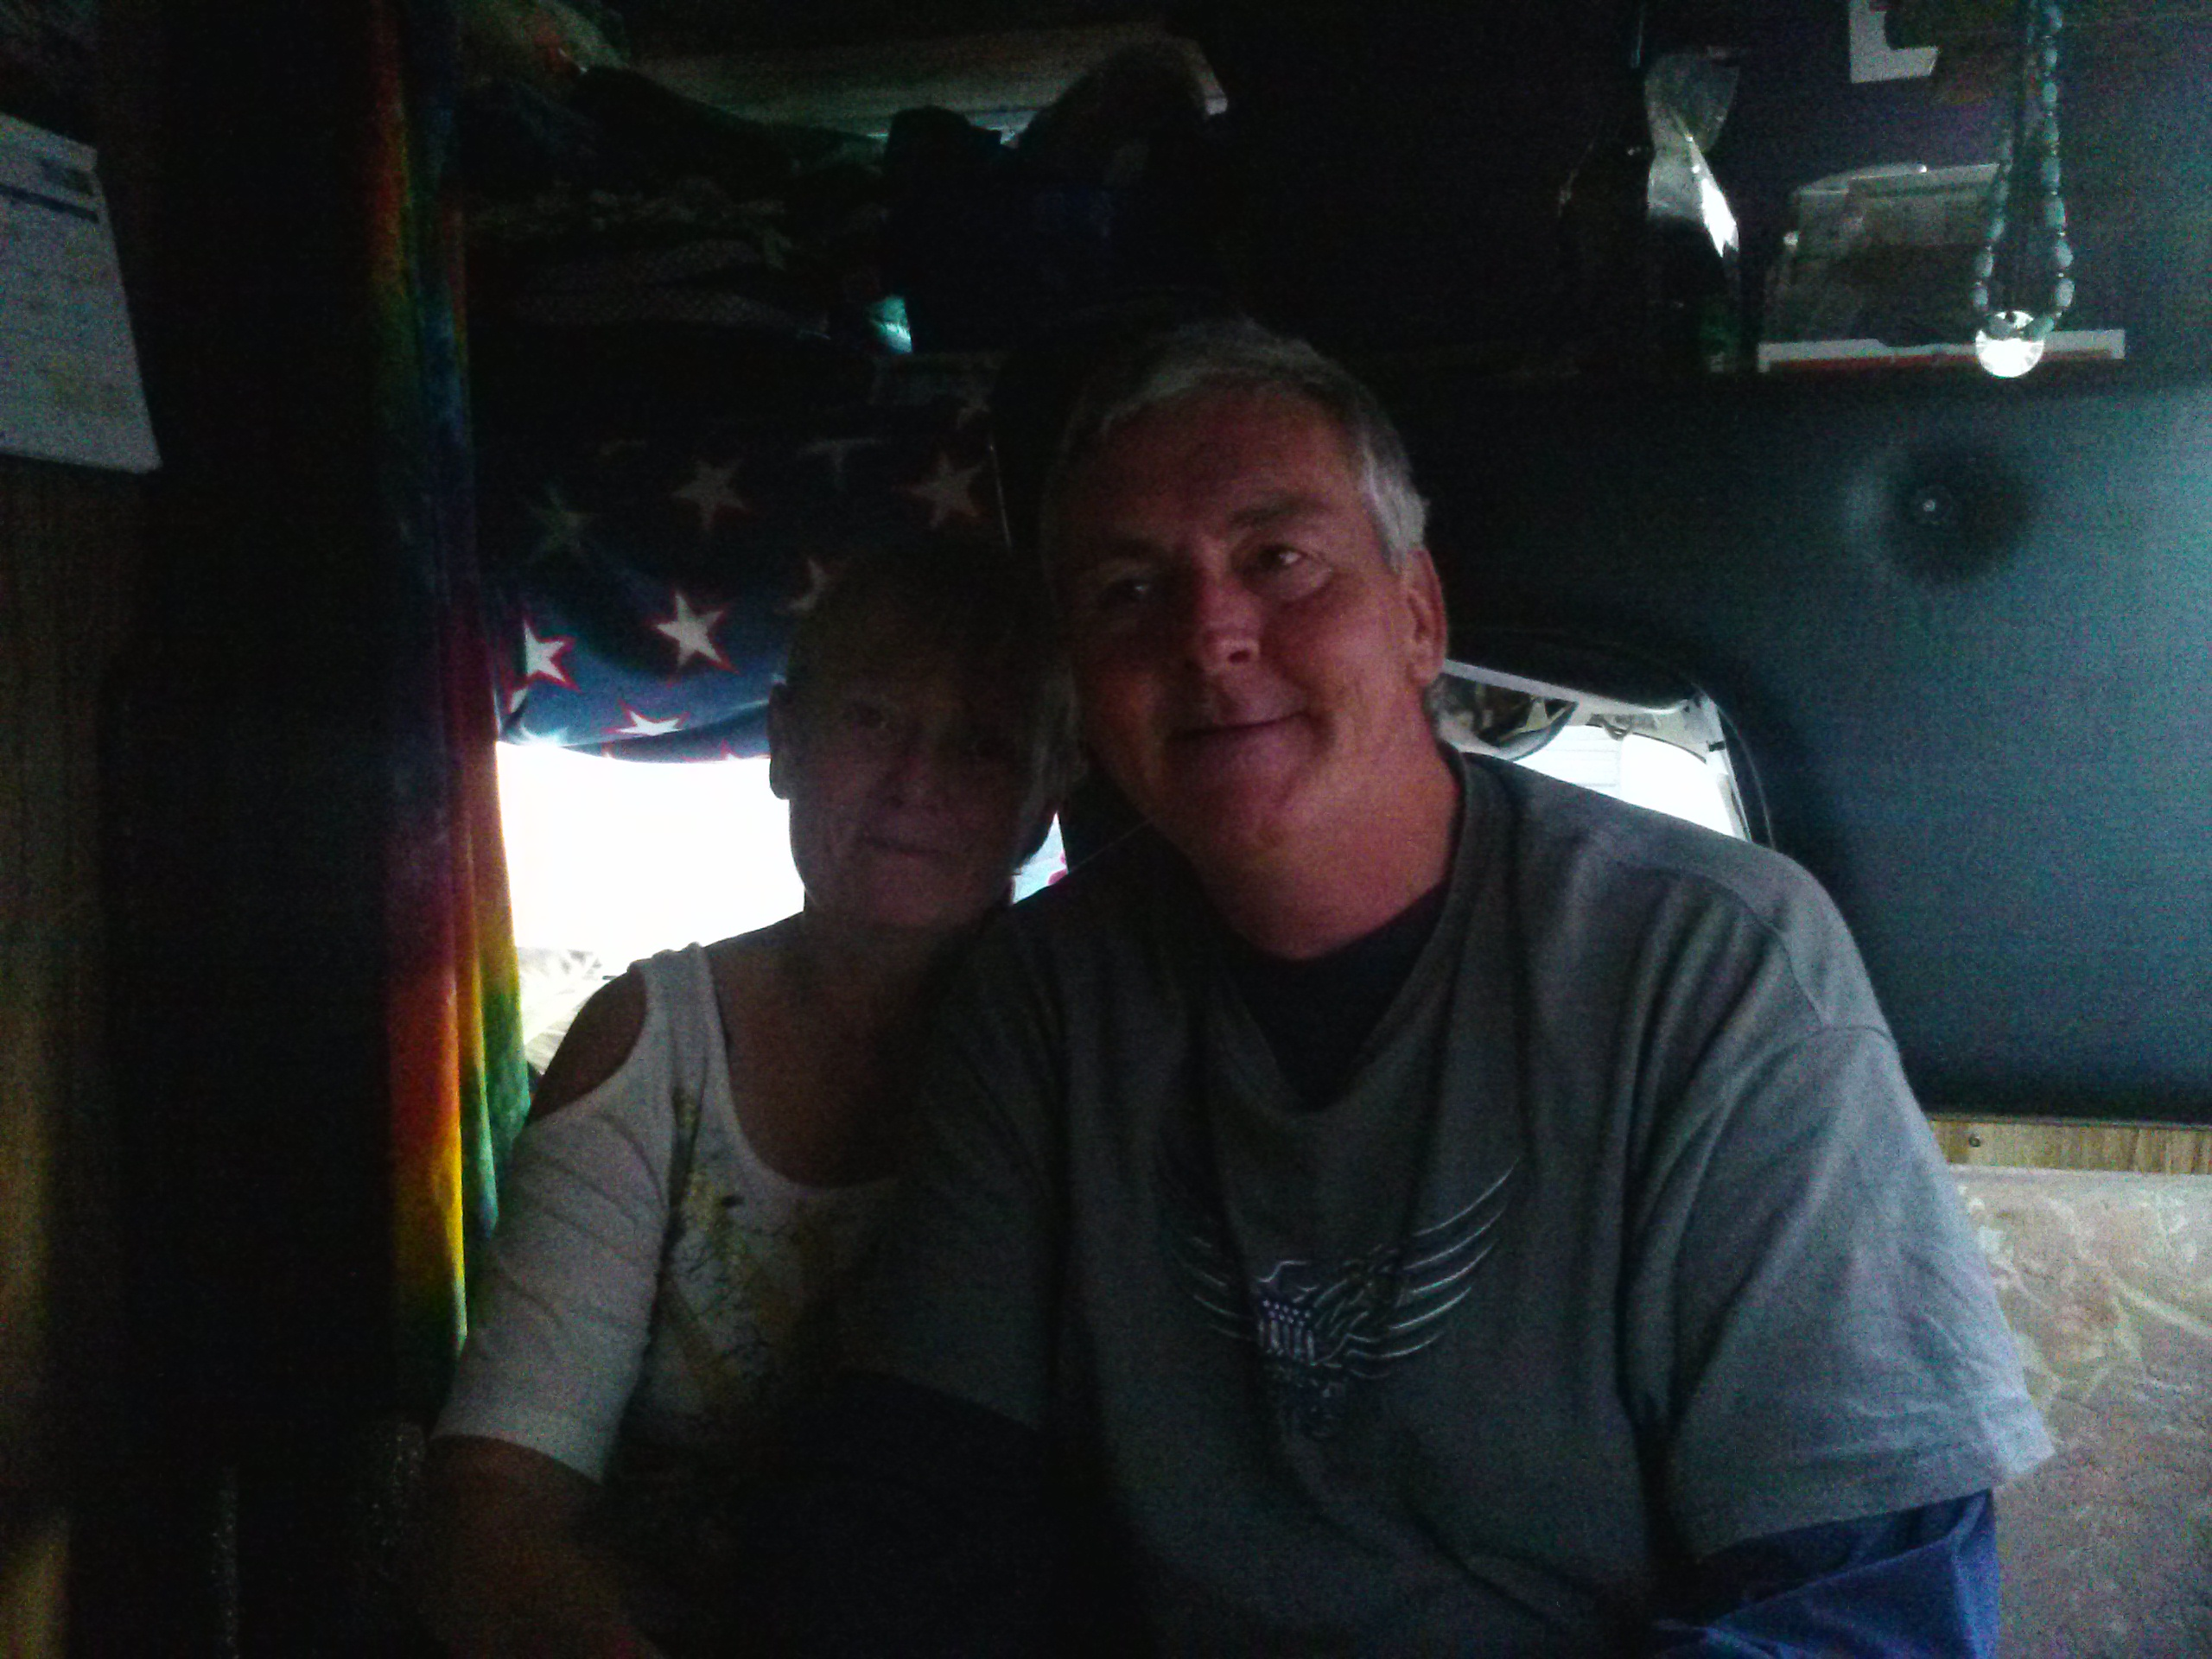 Mom and pops I love you both and pops I miss you so much